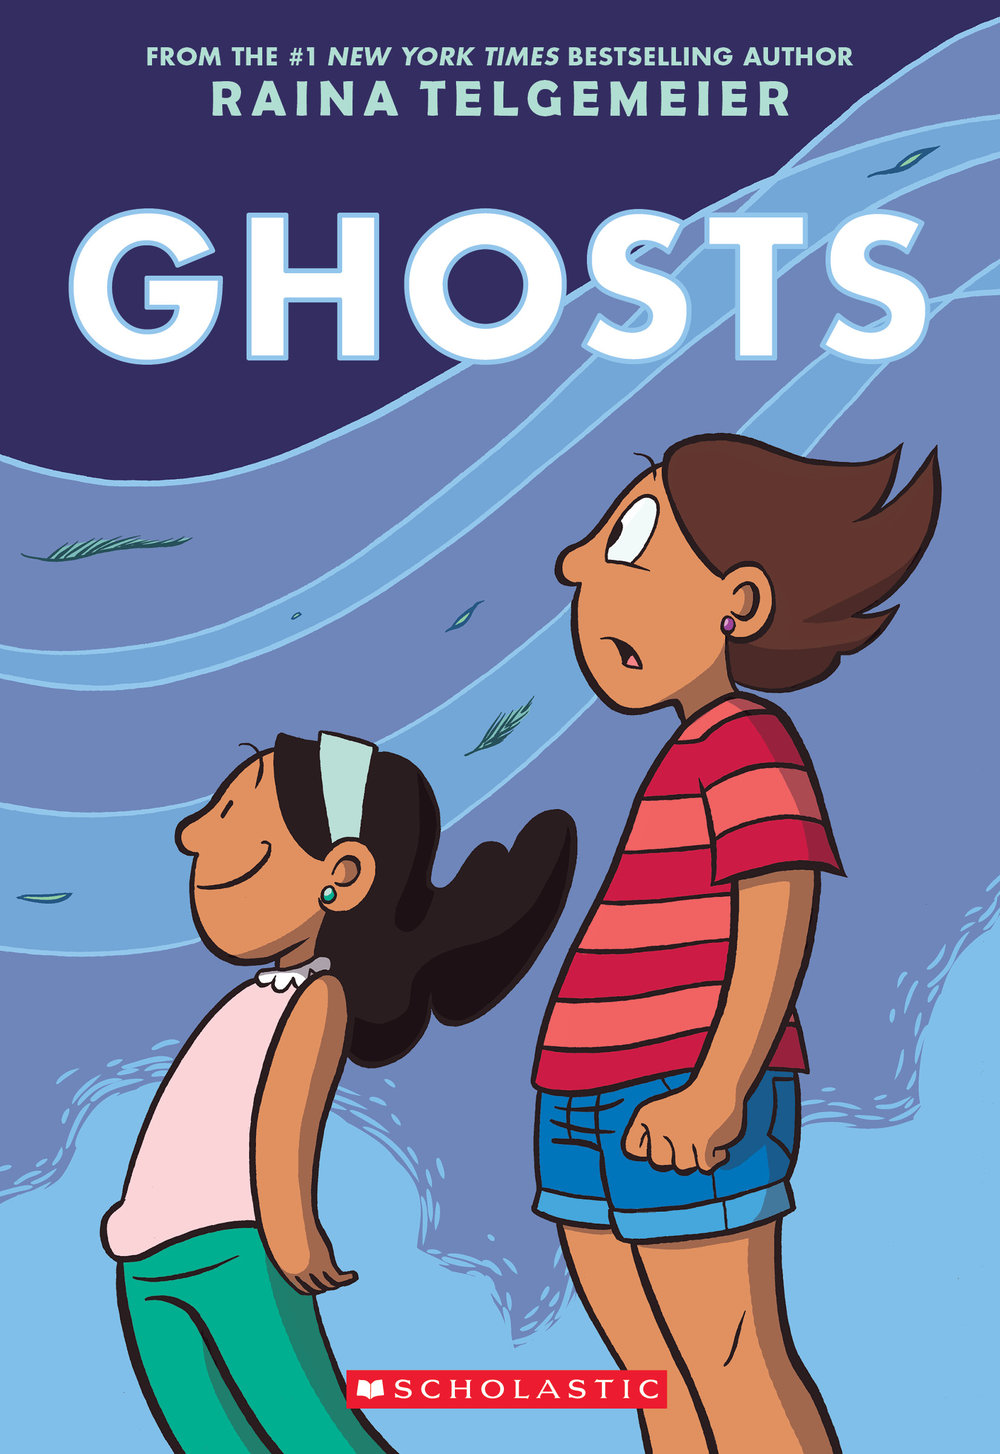 Ghosts by Raina Telgemeier   Cat's family are moving to a small and foggy town on the California coast because her sister Maya has cystic fibrosis and the damp air will help with her breathing. Cat is not happy about it, but she loves her sister and worries about her, so she tries to make the best of it. Everything changes when the girls discover that the town is a portal where friendly ghosts can cross into the real world and come to the Dia de Los Muertos celebrations. Maya makes friends with the ghosts and Cat learns that living your life is more important than worrying about death. This graphic novel from middle grade powerhouse Raina Telgemeier is funny, moving, smart and emotionally mature. It's already a huge hit with our regular readers and rightly so.